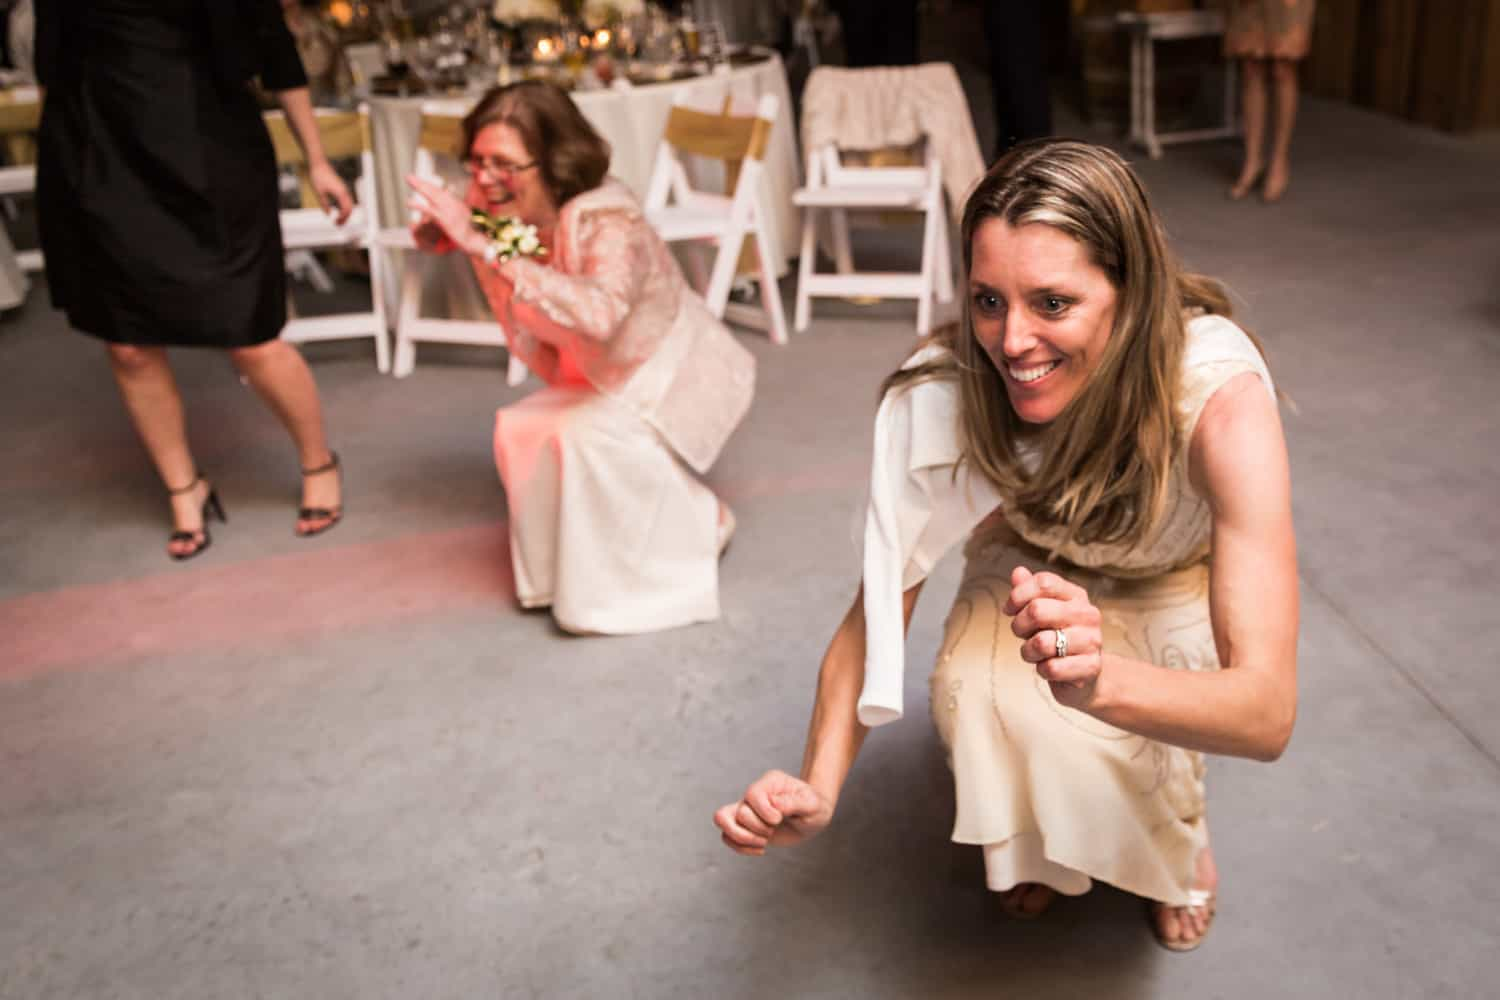 Two female guests dancing close to floor